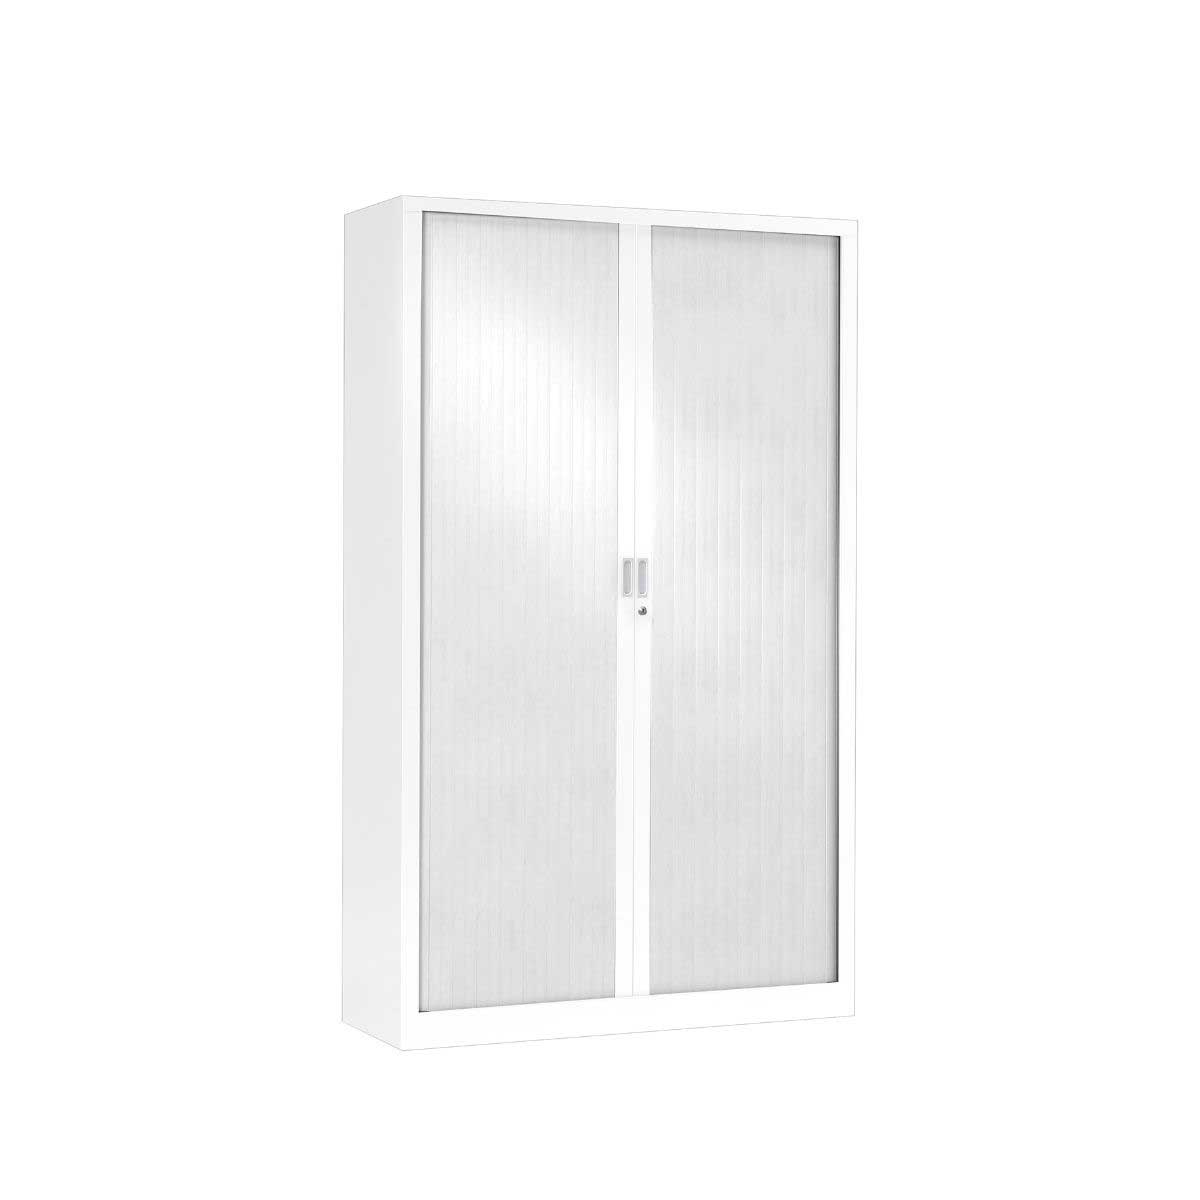 Generic Tambour Cupboard Height 1980mm, White